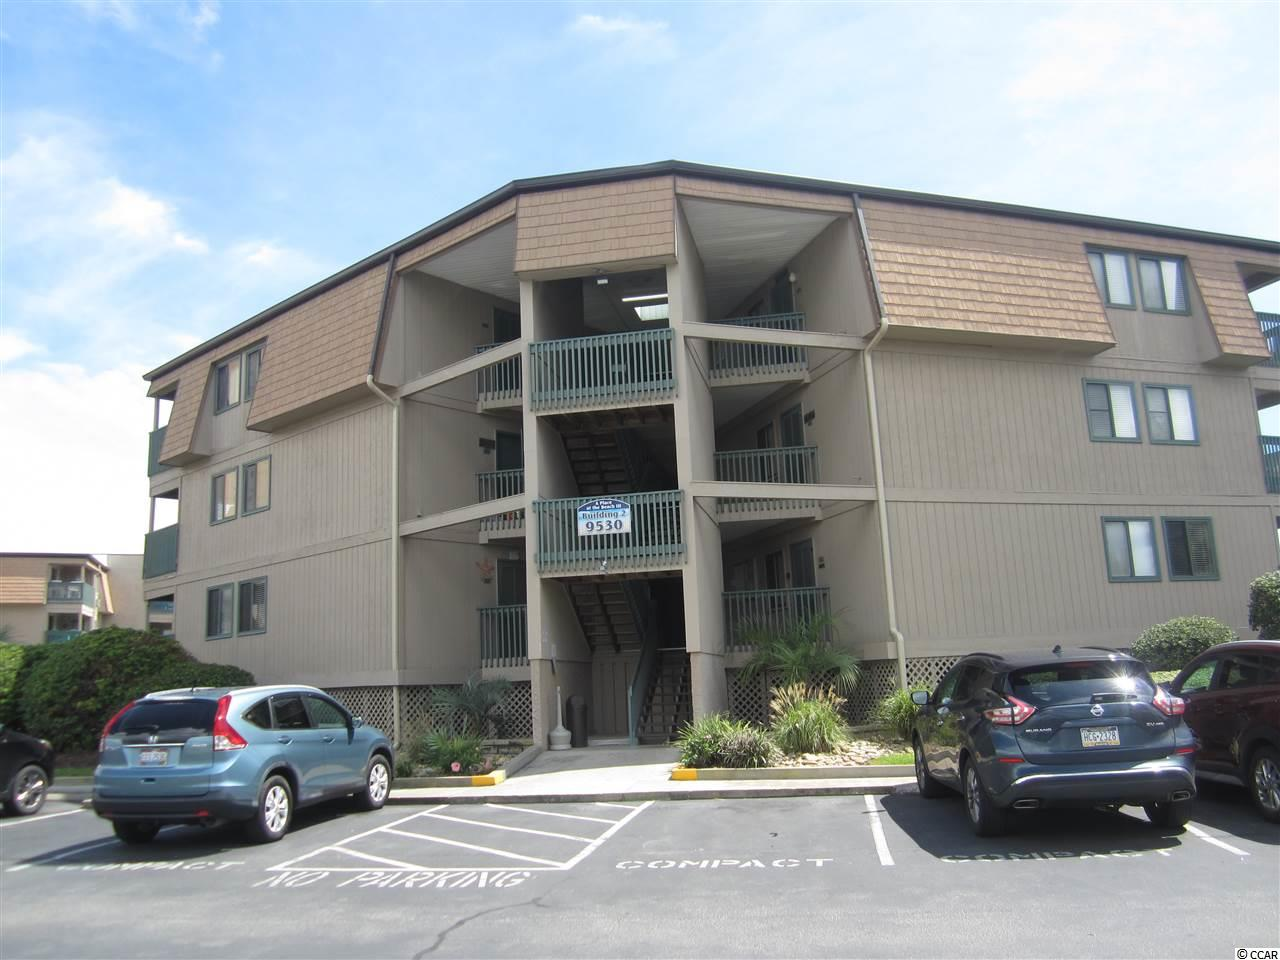 Own a DIRECT OCEAN FRONT condo in the Shore Drive section of Myrtle Beach. Spacious 2 bedroom, 2 bath well maintained condo in the popular APATB III-II building.  The Seller installed central HVAC in 2018, replaced all flooring with vinyl planks and updated some furnishings. Great ocean views from the Master bedroom and living room.   A Place at the Beach properties have great rental potential or use it as your own Beach getaway.  9530 is across the street from a serene Marsh and has a wonderful outdoor pool and grilling area.  Close to the popular Ocean Annie's oceanfront bar and everything Myrtle Beach has to offer.